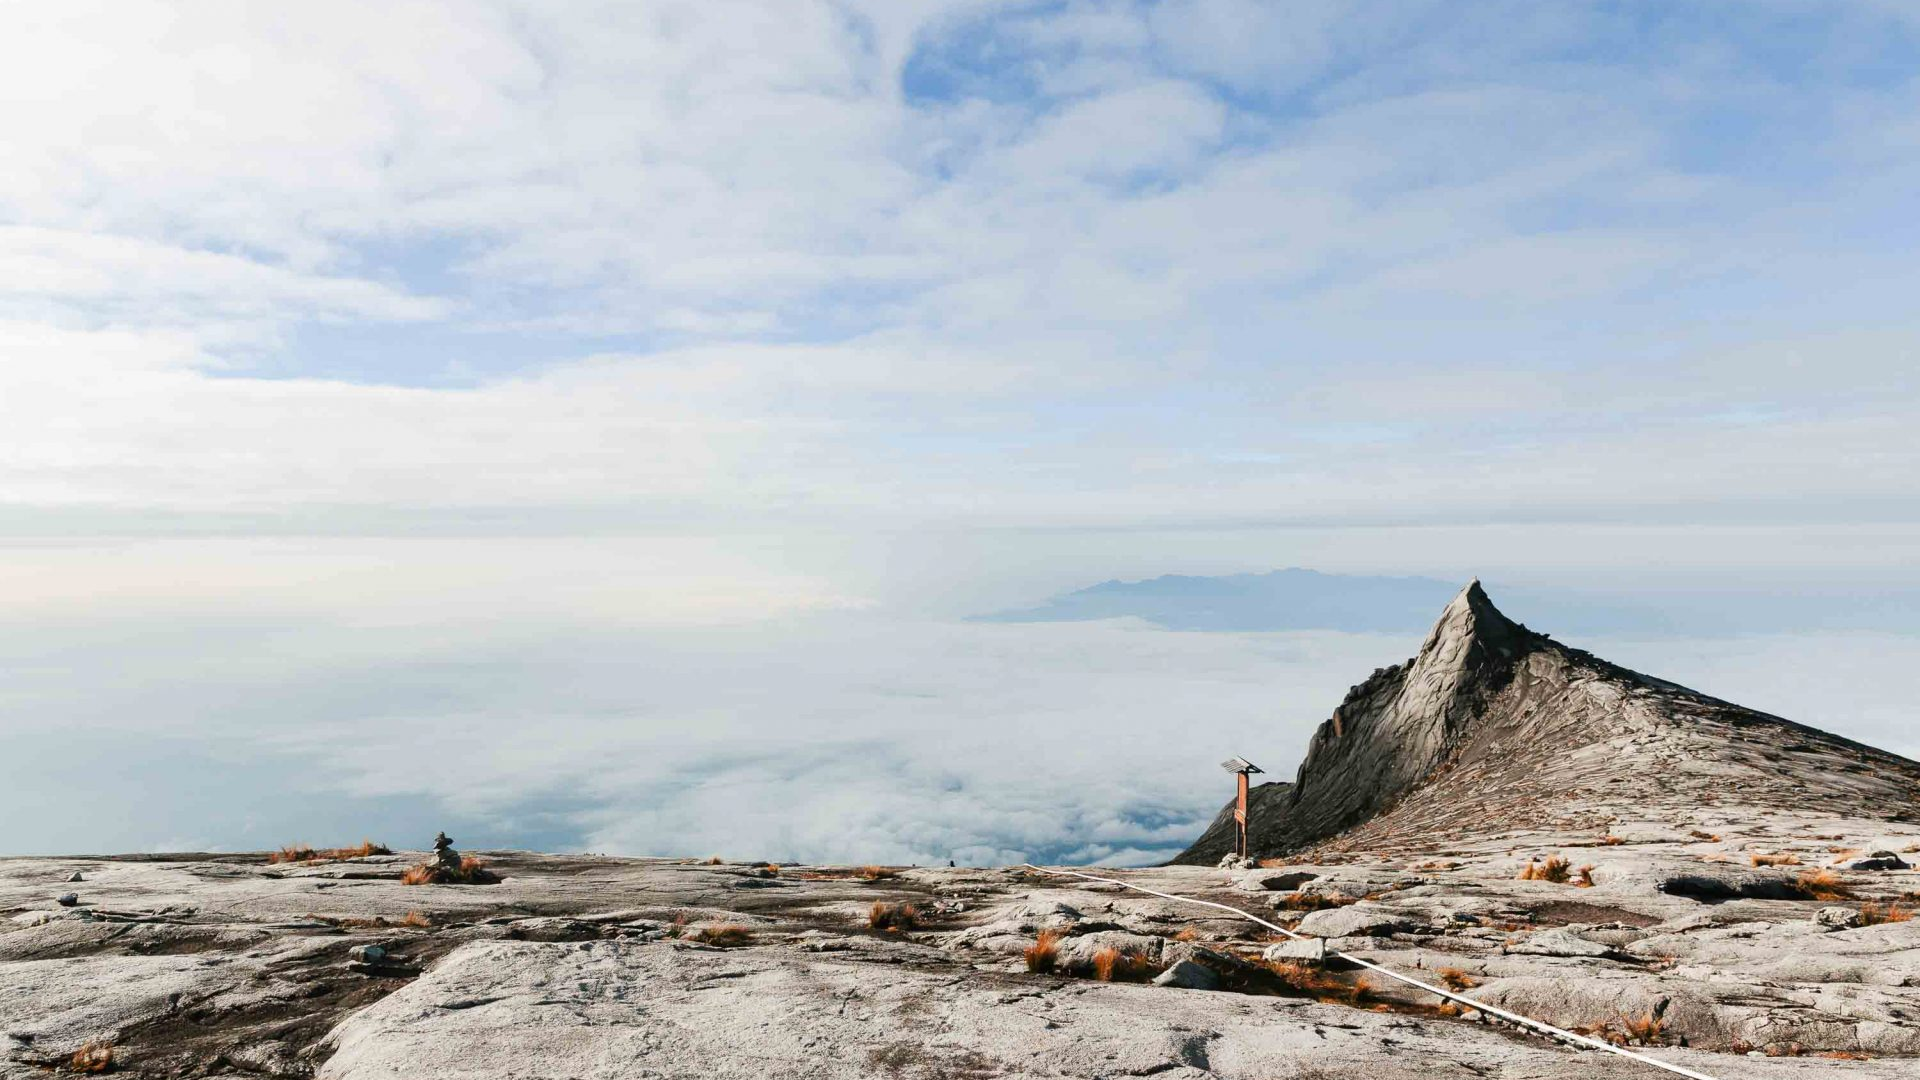 Mount Kinabalu summit approach in Borneo.